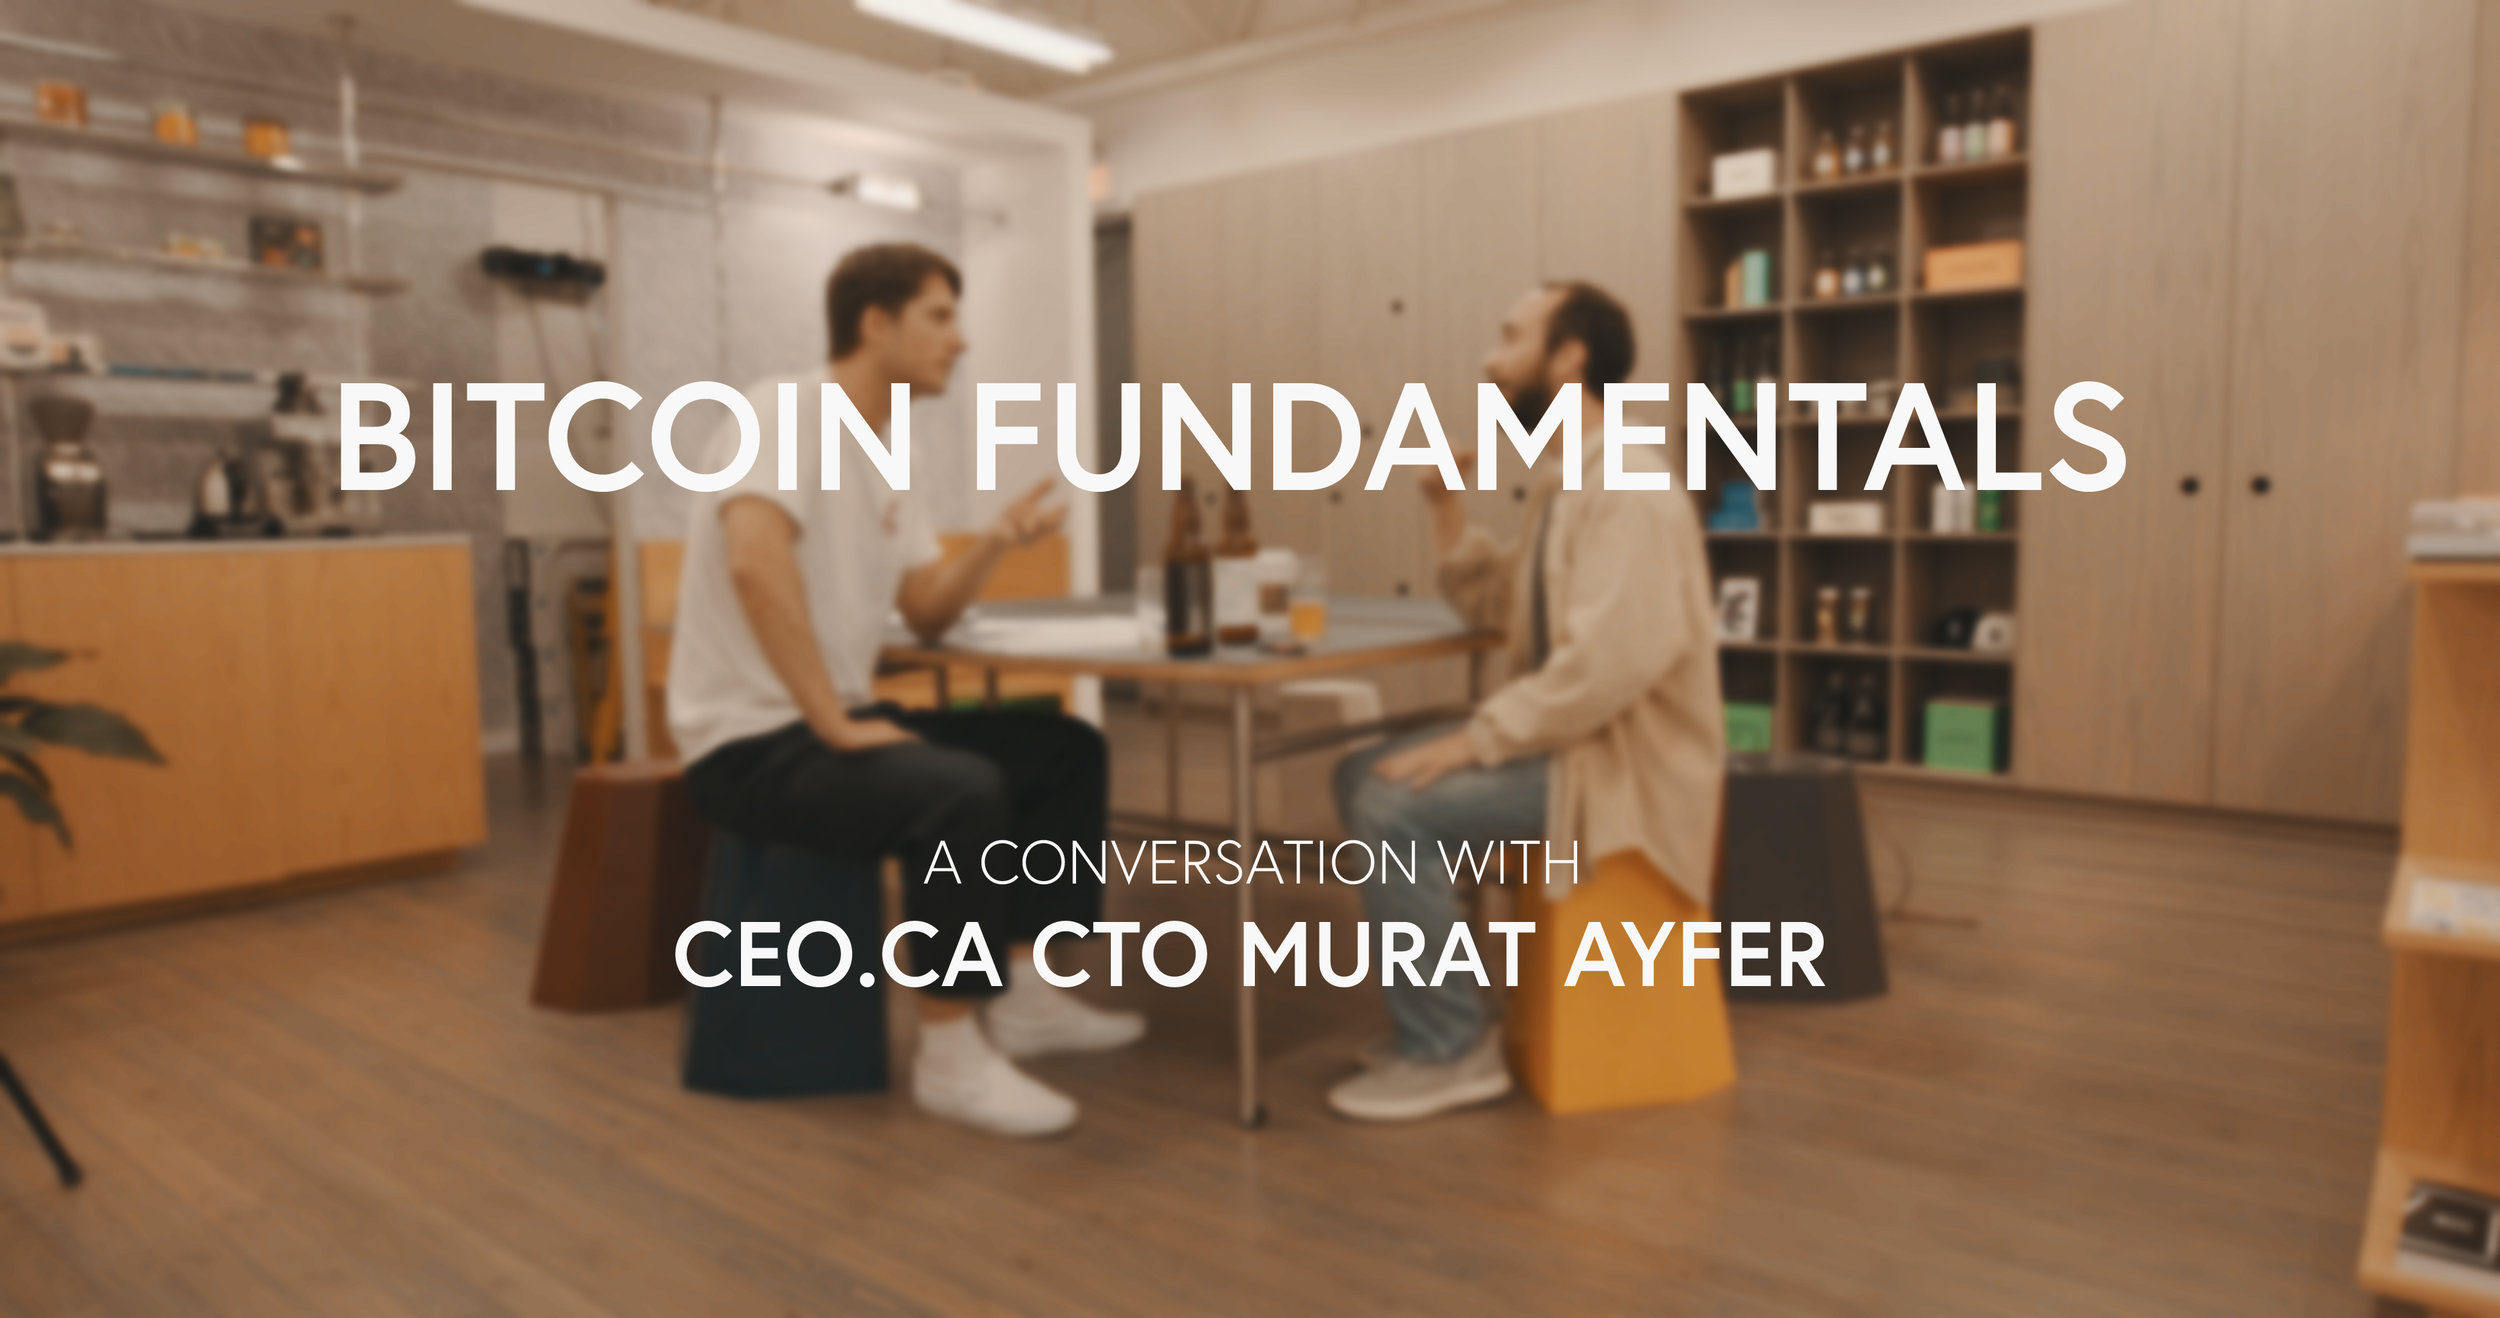 I sit down with Murat Ayfer, CTO of CEO.ca. Murat clearly and concisely explains the key fundamentals driving value into the Bitcoin network.